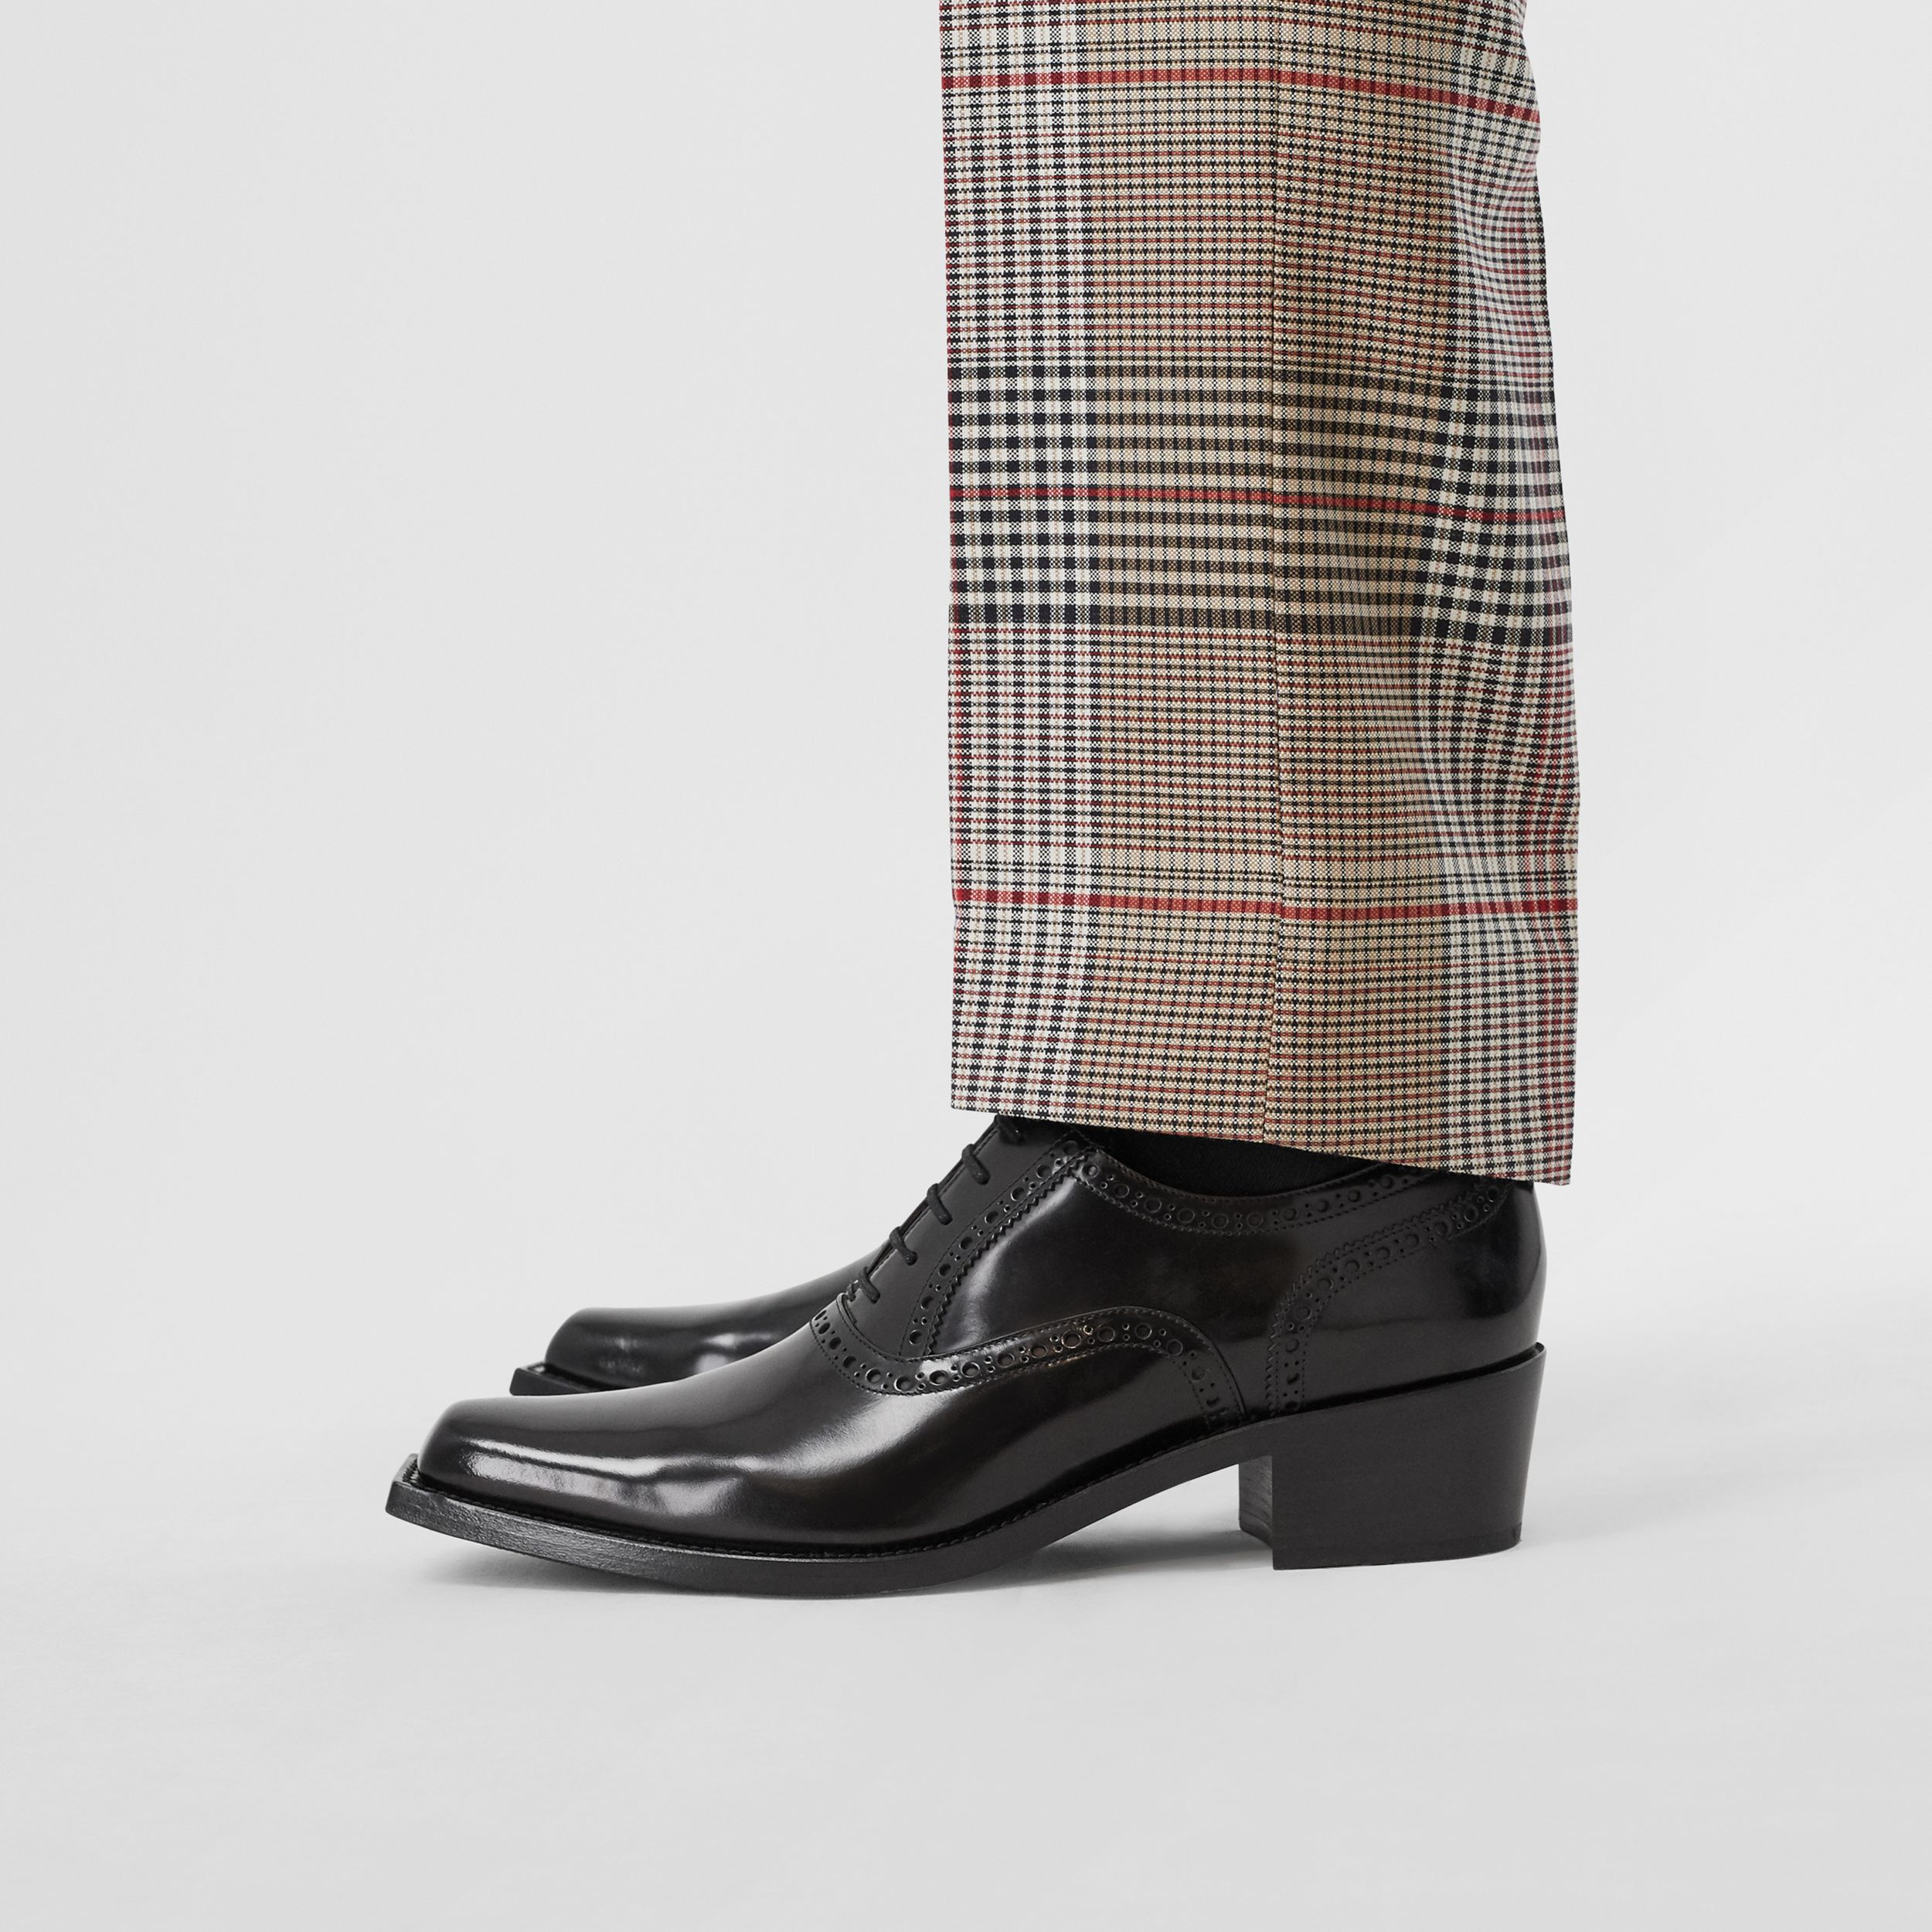 D-ring Detail Leather Heeled Oxford Brogues in Black | Burberry - 3